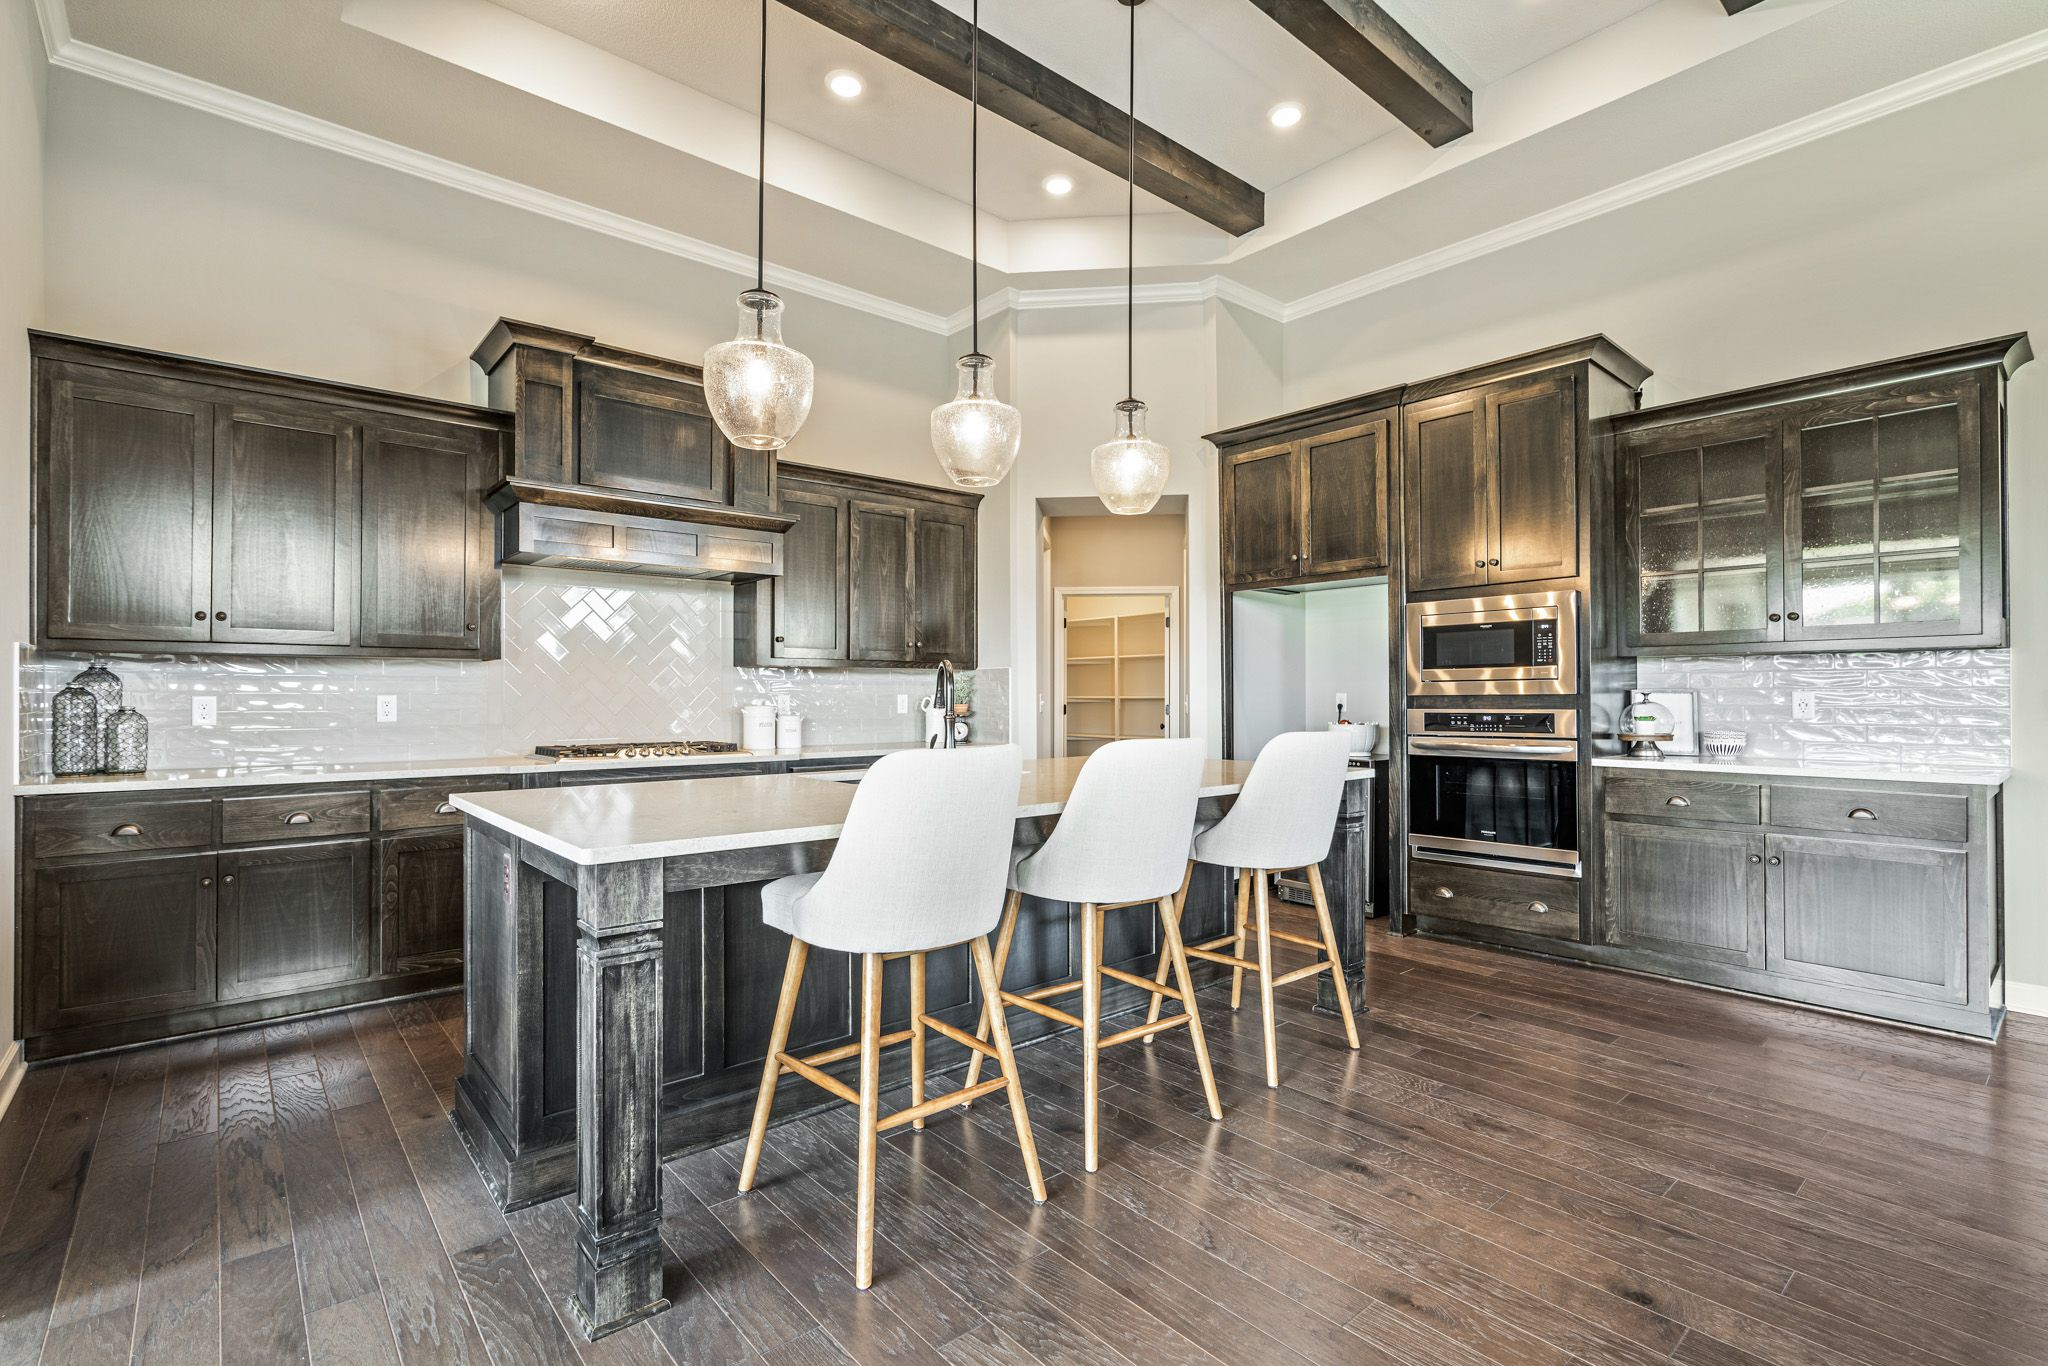 Kitchen featured in the Pikewood By Summit Homes in Kansas City, MO